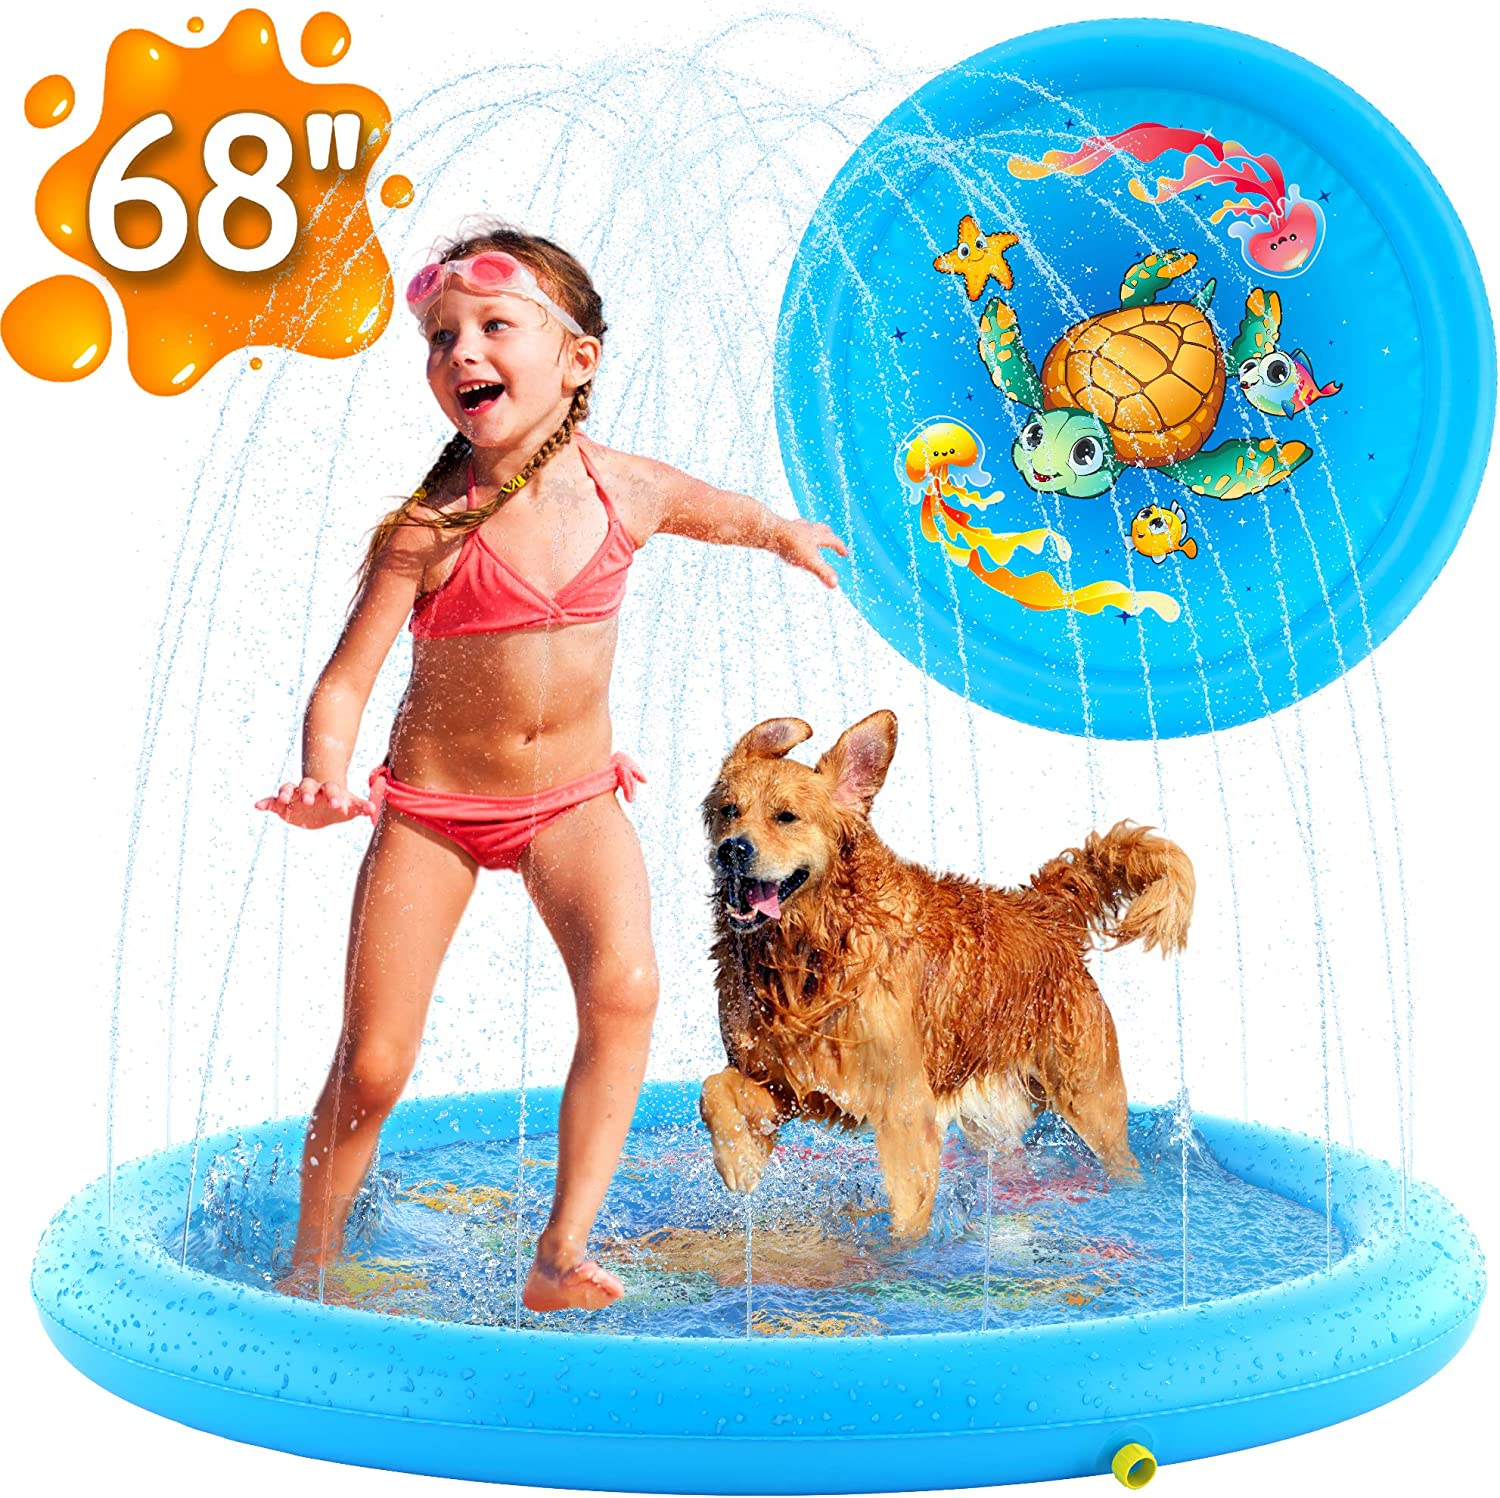 """Inflatable Splash Pad Sprinkler for Kids Toddlers, Kiddie Baby Pool, Outdoor Games Water Mat Toys - Baby Infant Wadin Swimming Pool - Fun Backyard Fountain Play Mat for 1 -12 Year Old Girls Boys (68"""")"""